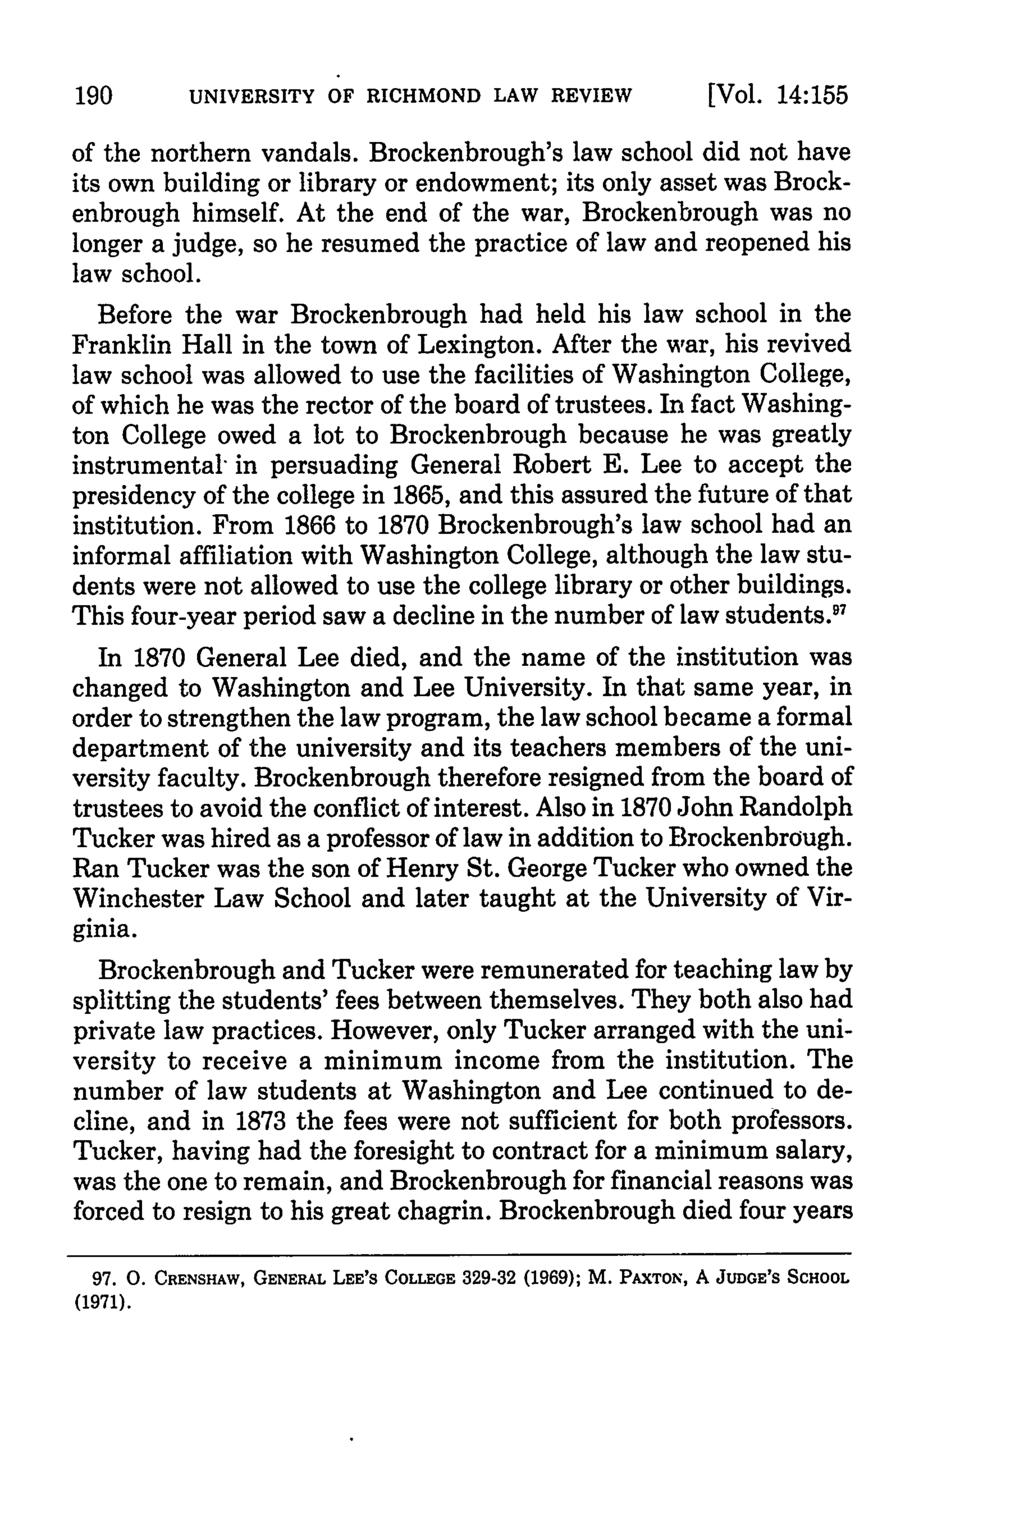 UNIVERSITY OF RICHMOND LAW REVIEW [Vol. 14:155 of the northern vandals. Brockenbrough's law school did not have its own building or library or endowment; its only asset was Brockenbrough himself.